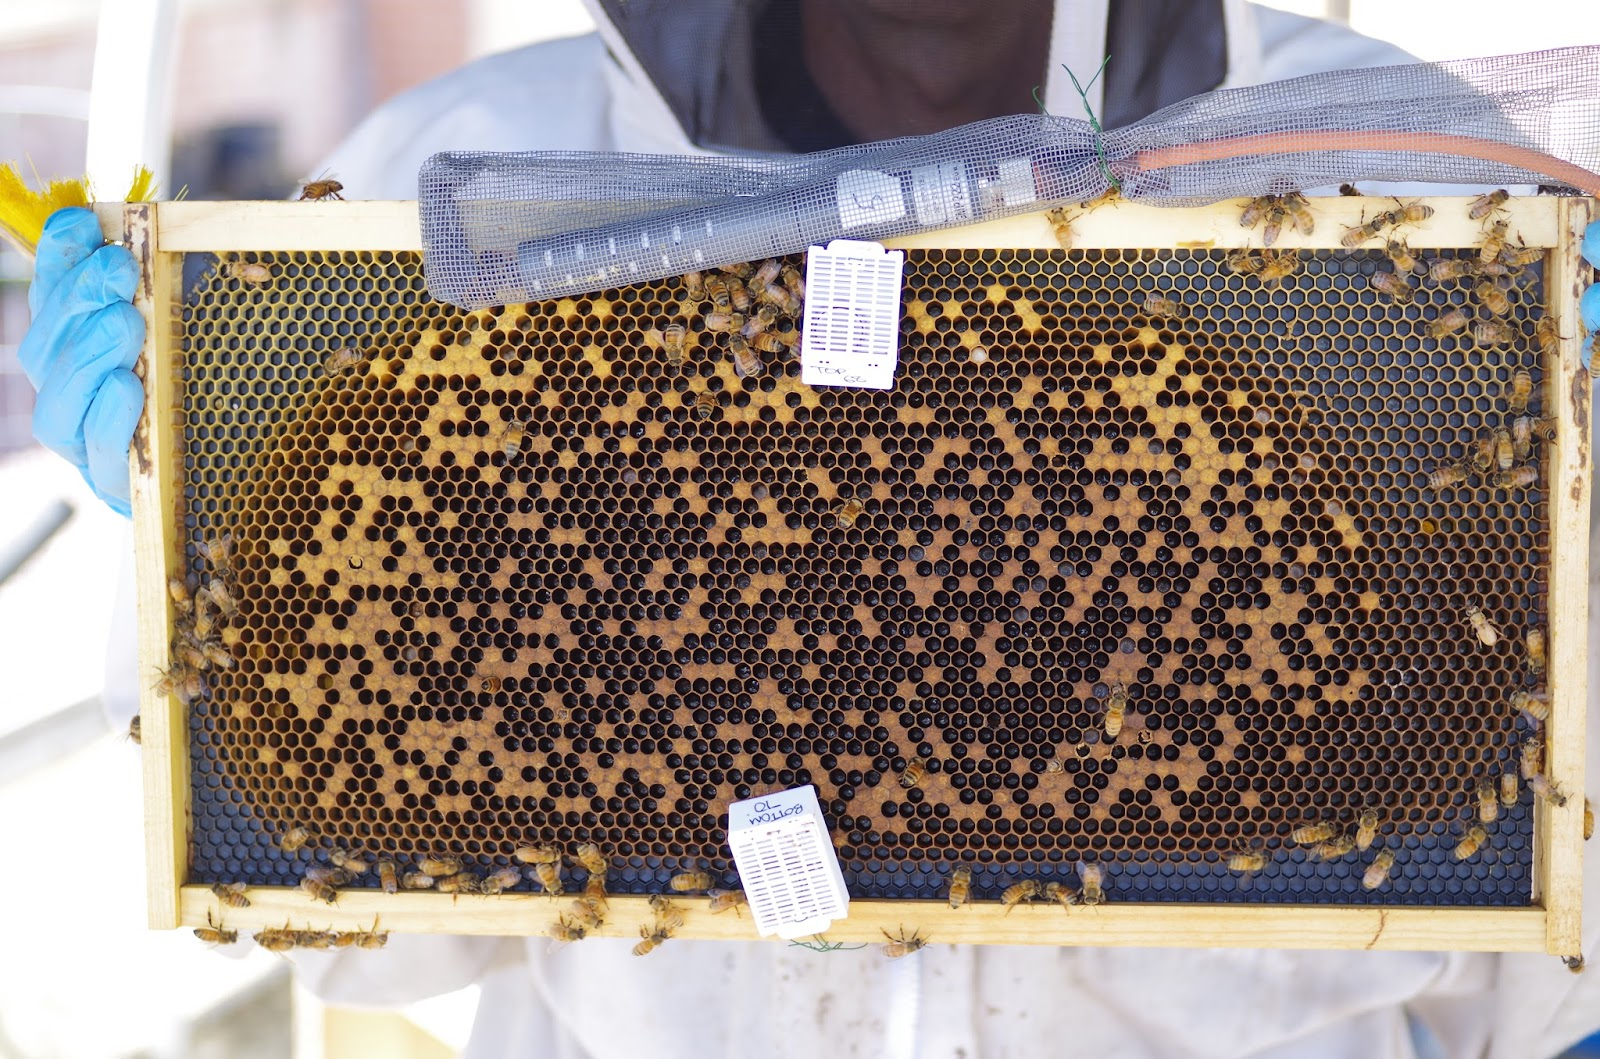 Are Miticides Harming Or Helping Our Bees Wiring Board Bee Frames The Brood Cells Of Comb Covered With Brown Caps In Order To Assess Area I Need Trace Every Cell Using A Computer Program Called